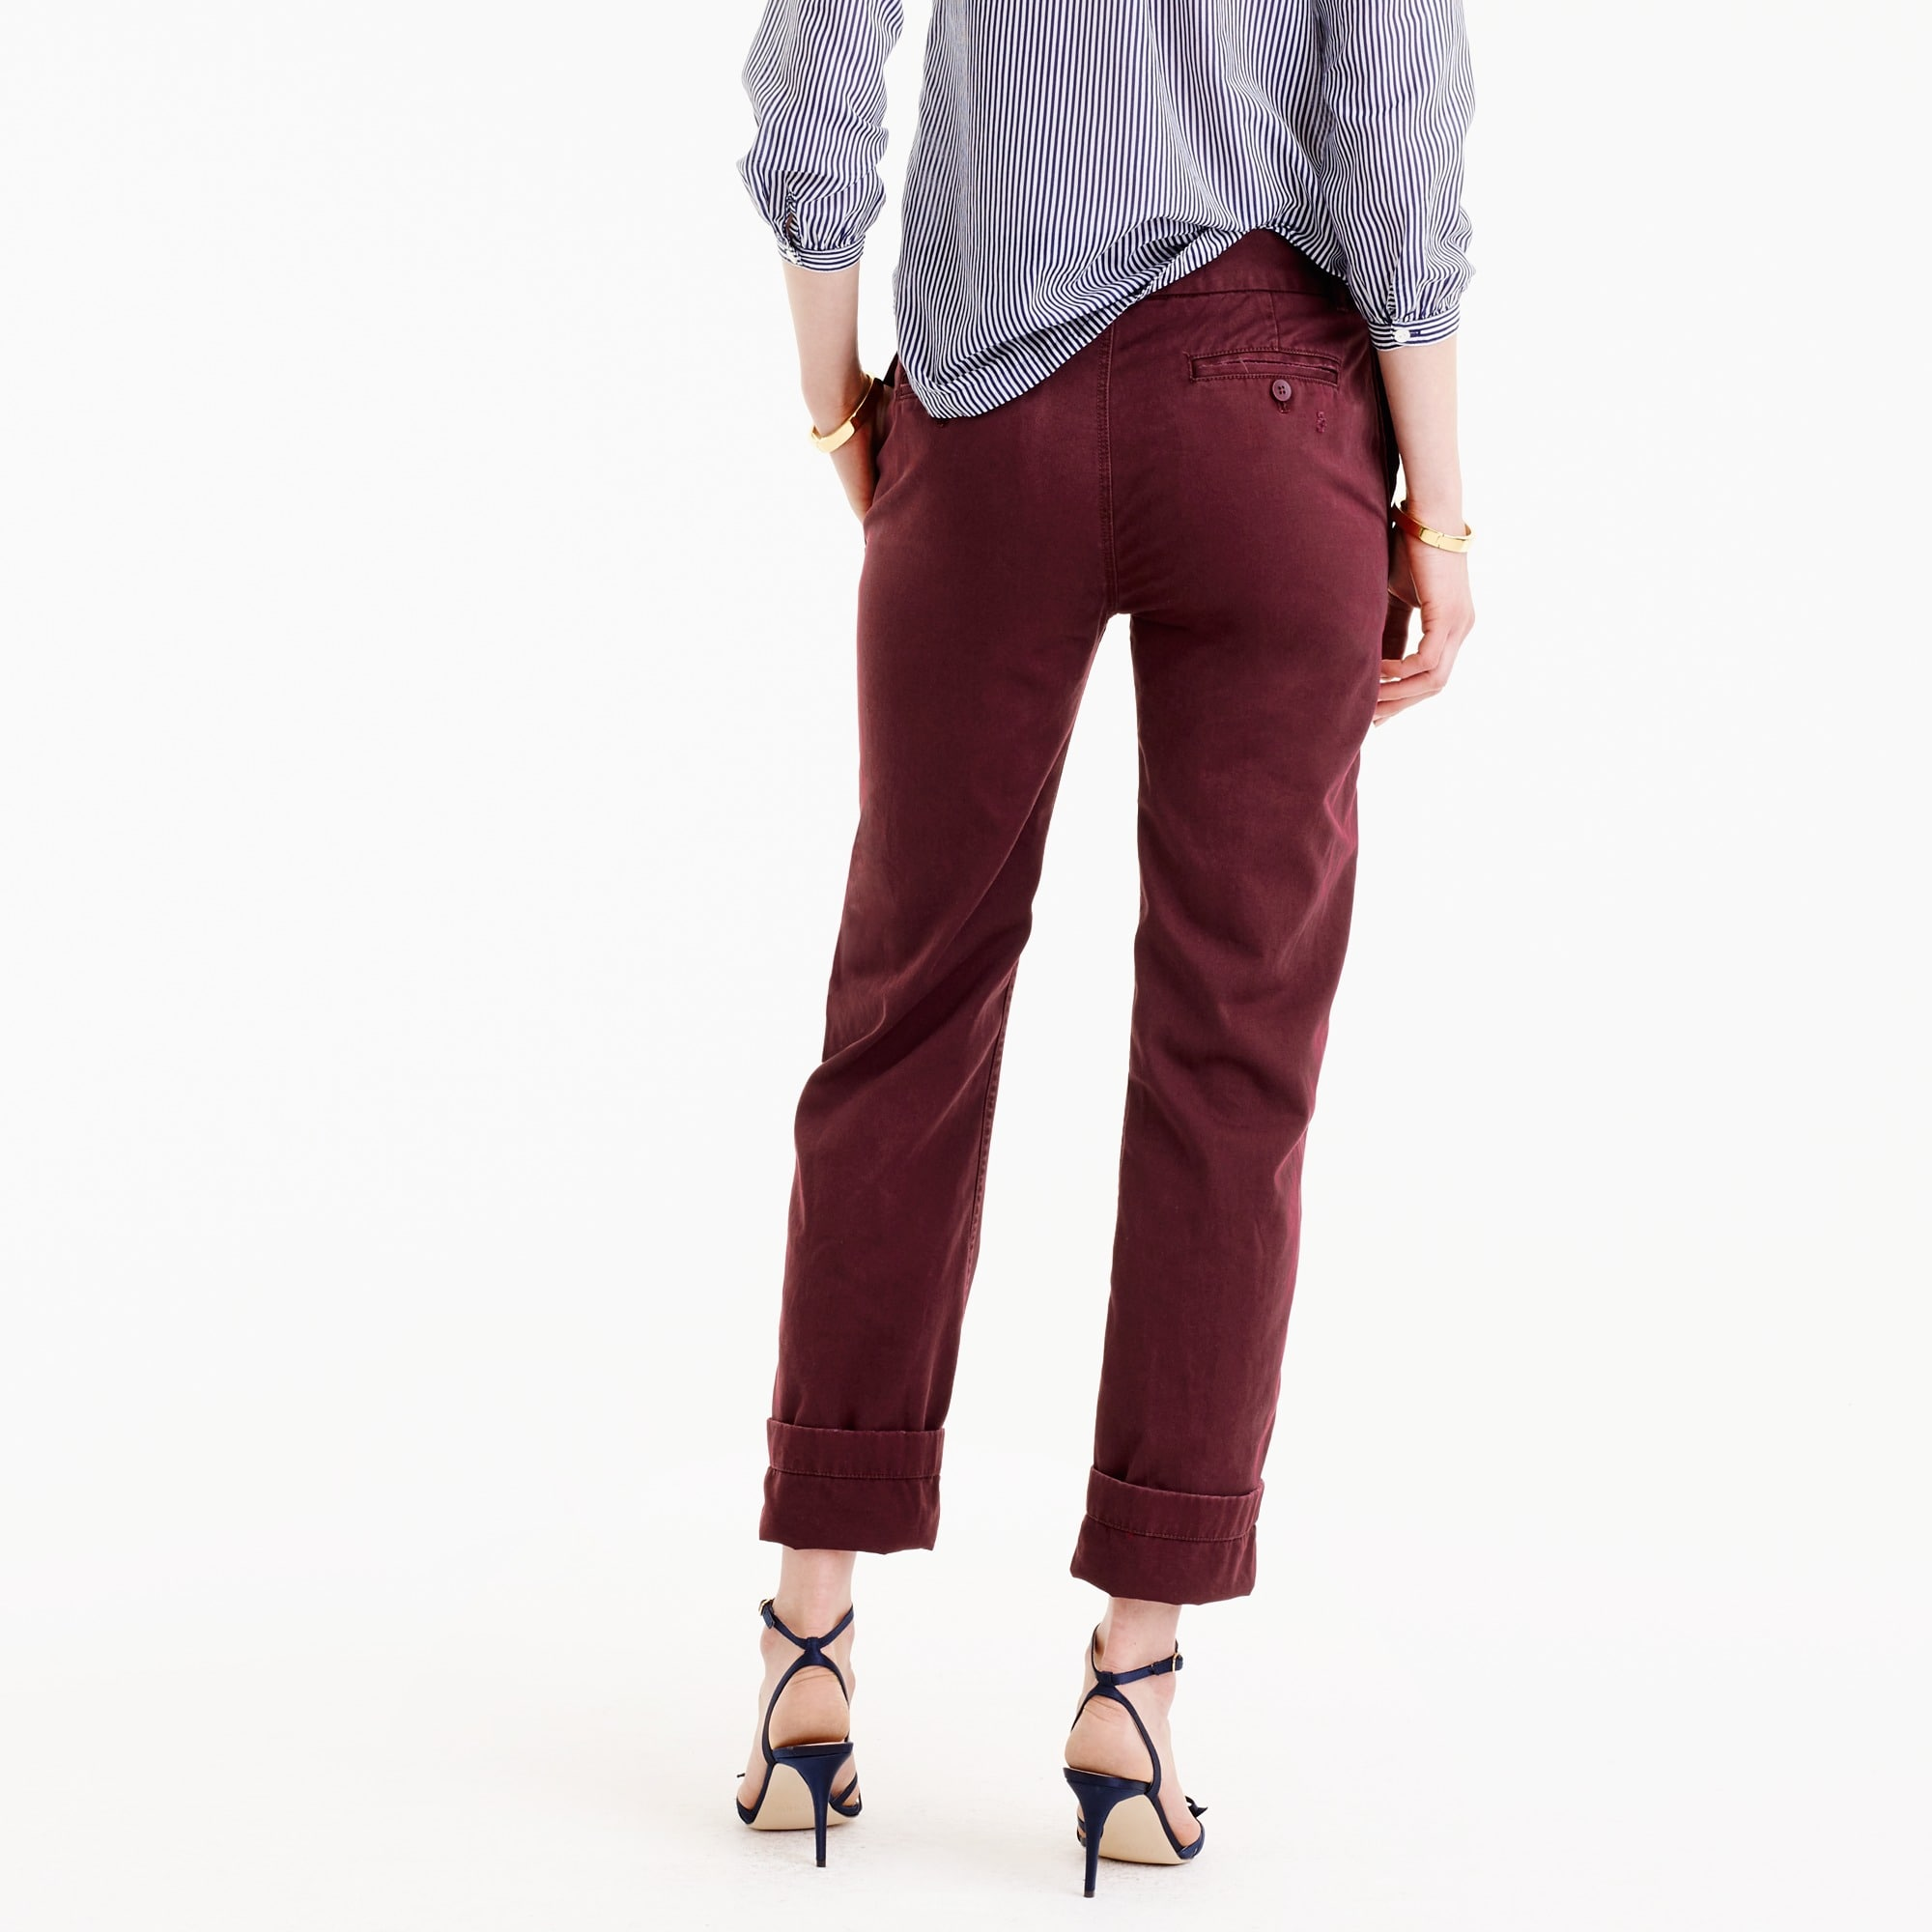 Broken-in boyfriend chino pant